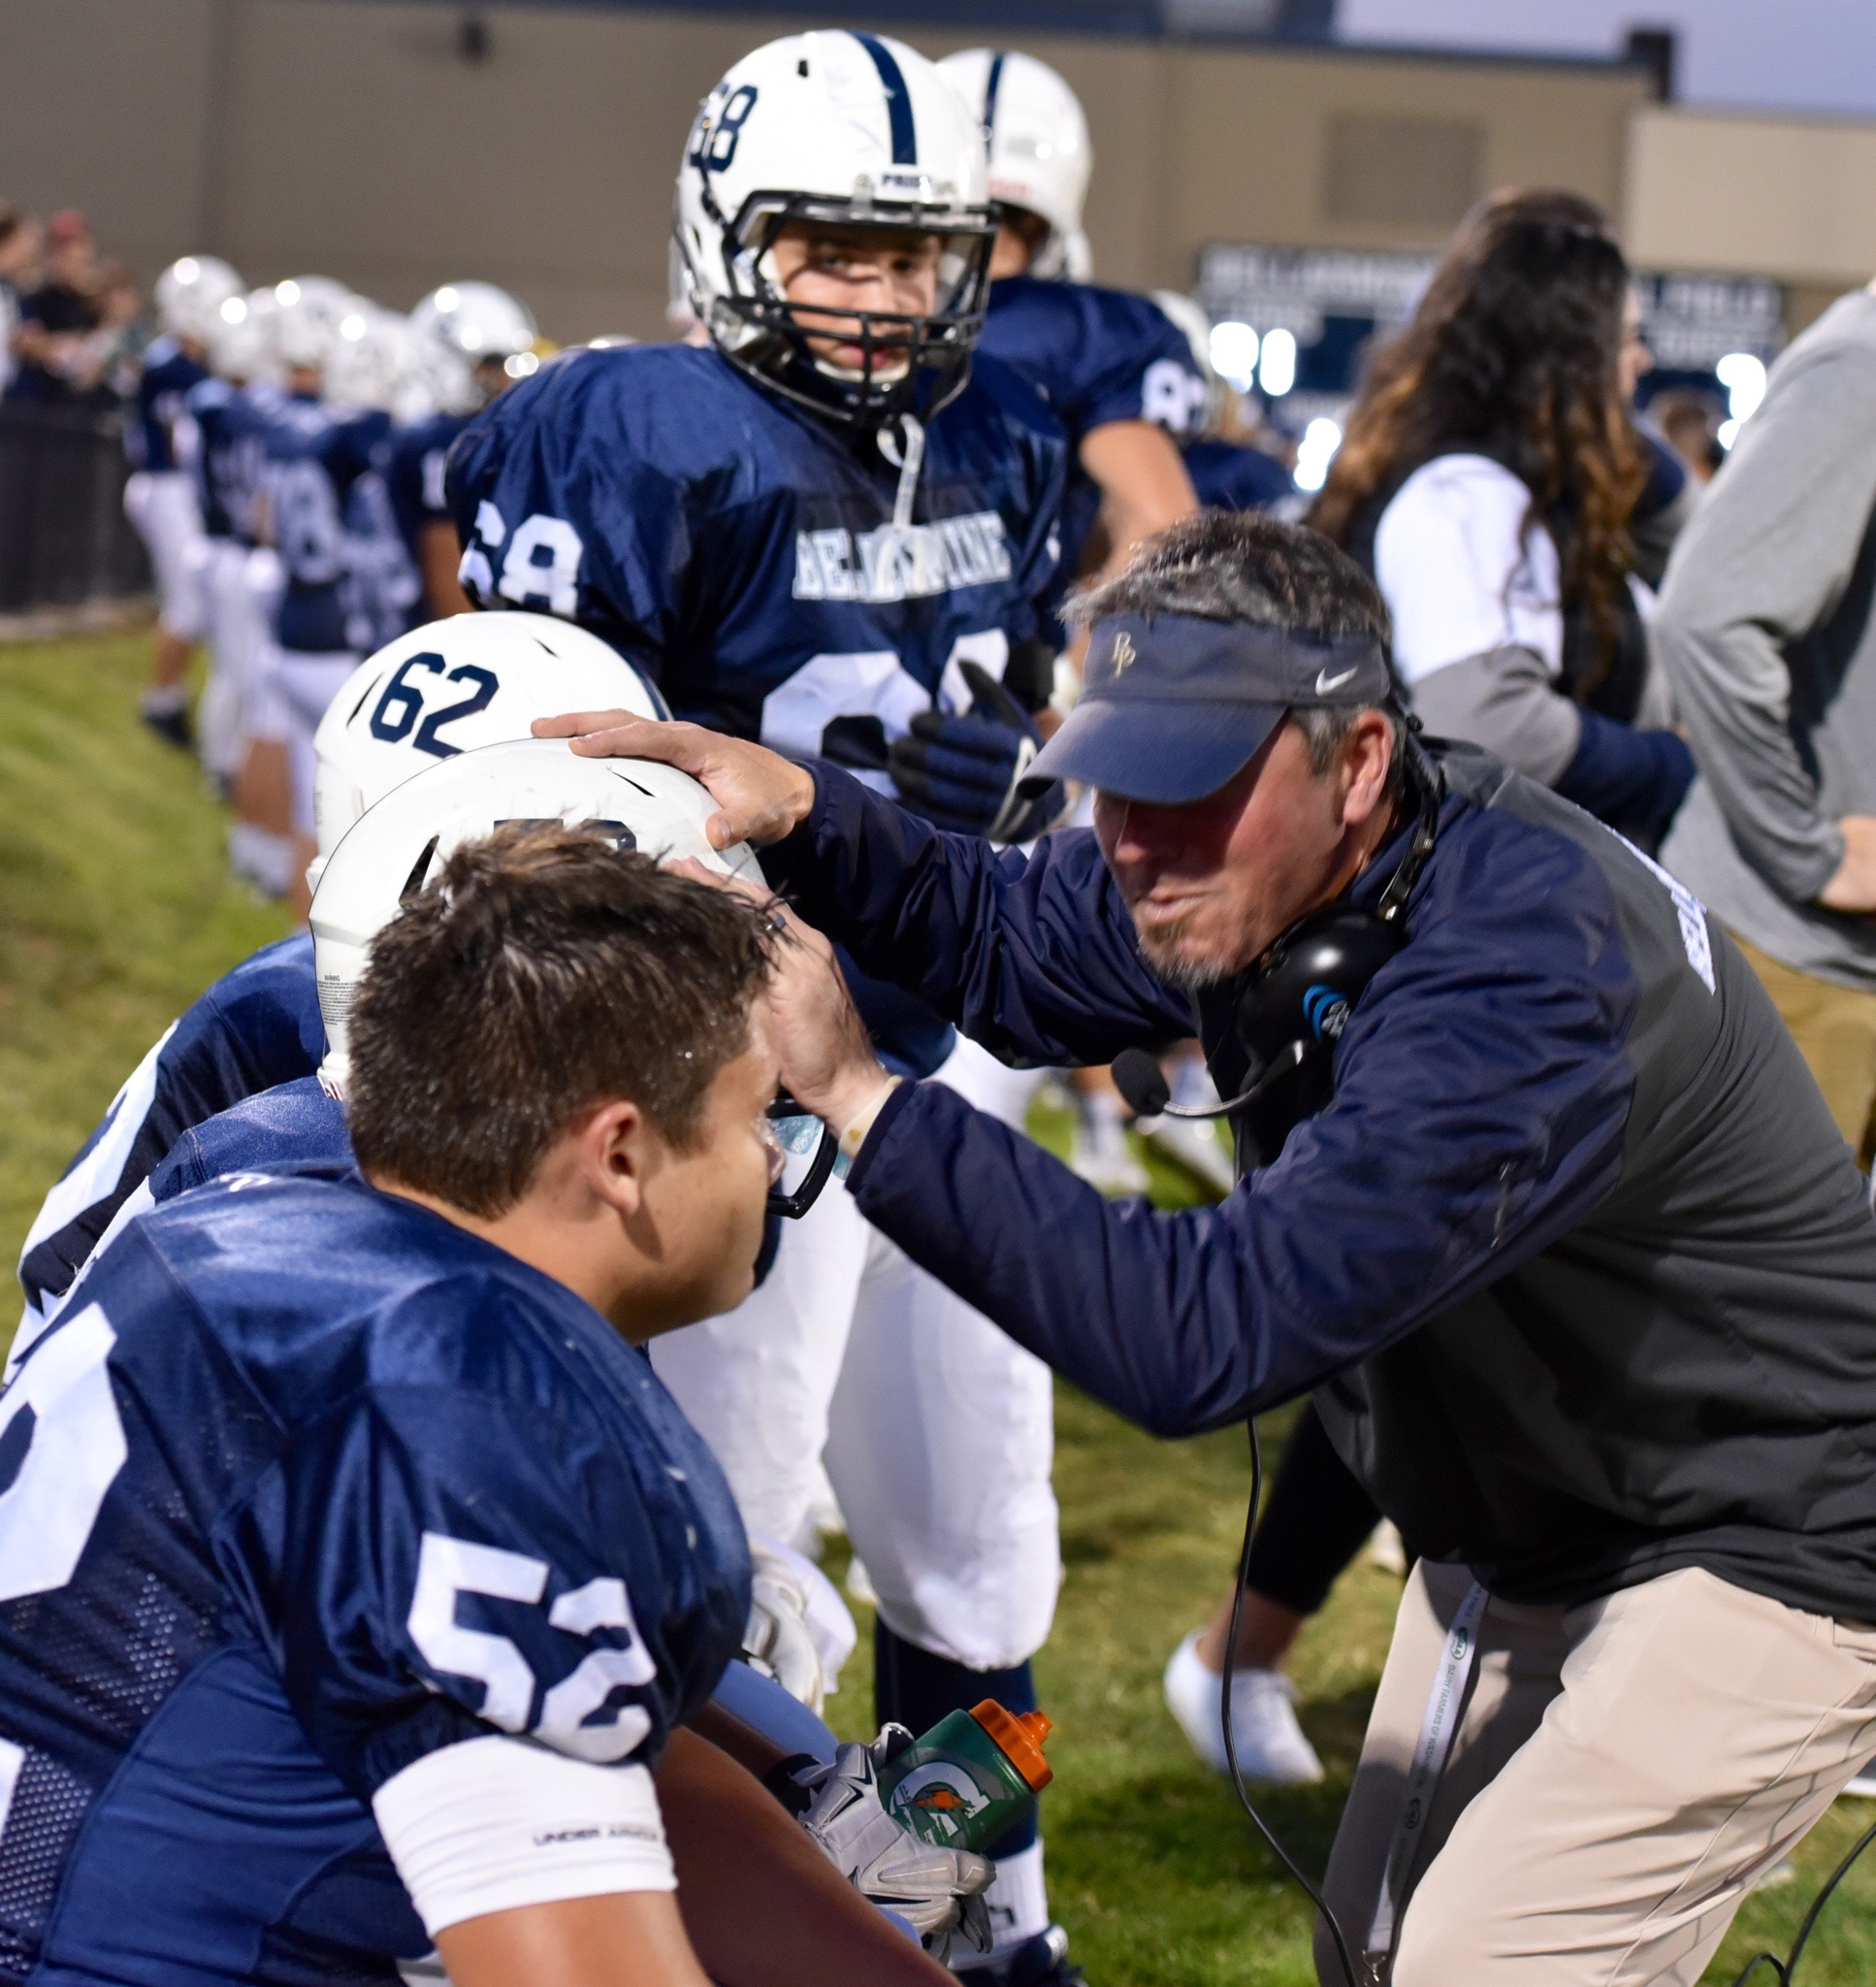 Coach Jensen fires up the offensive line before a big series. Photo by Susie Gray